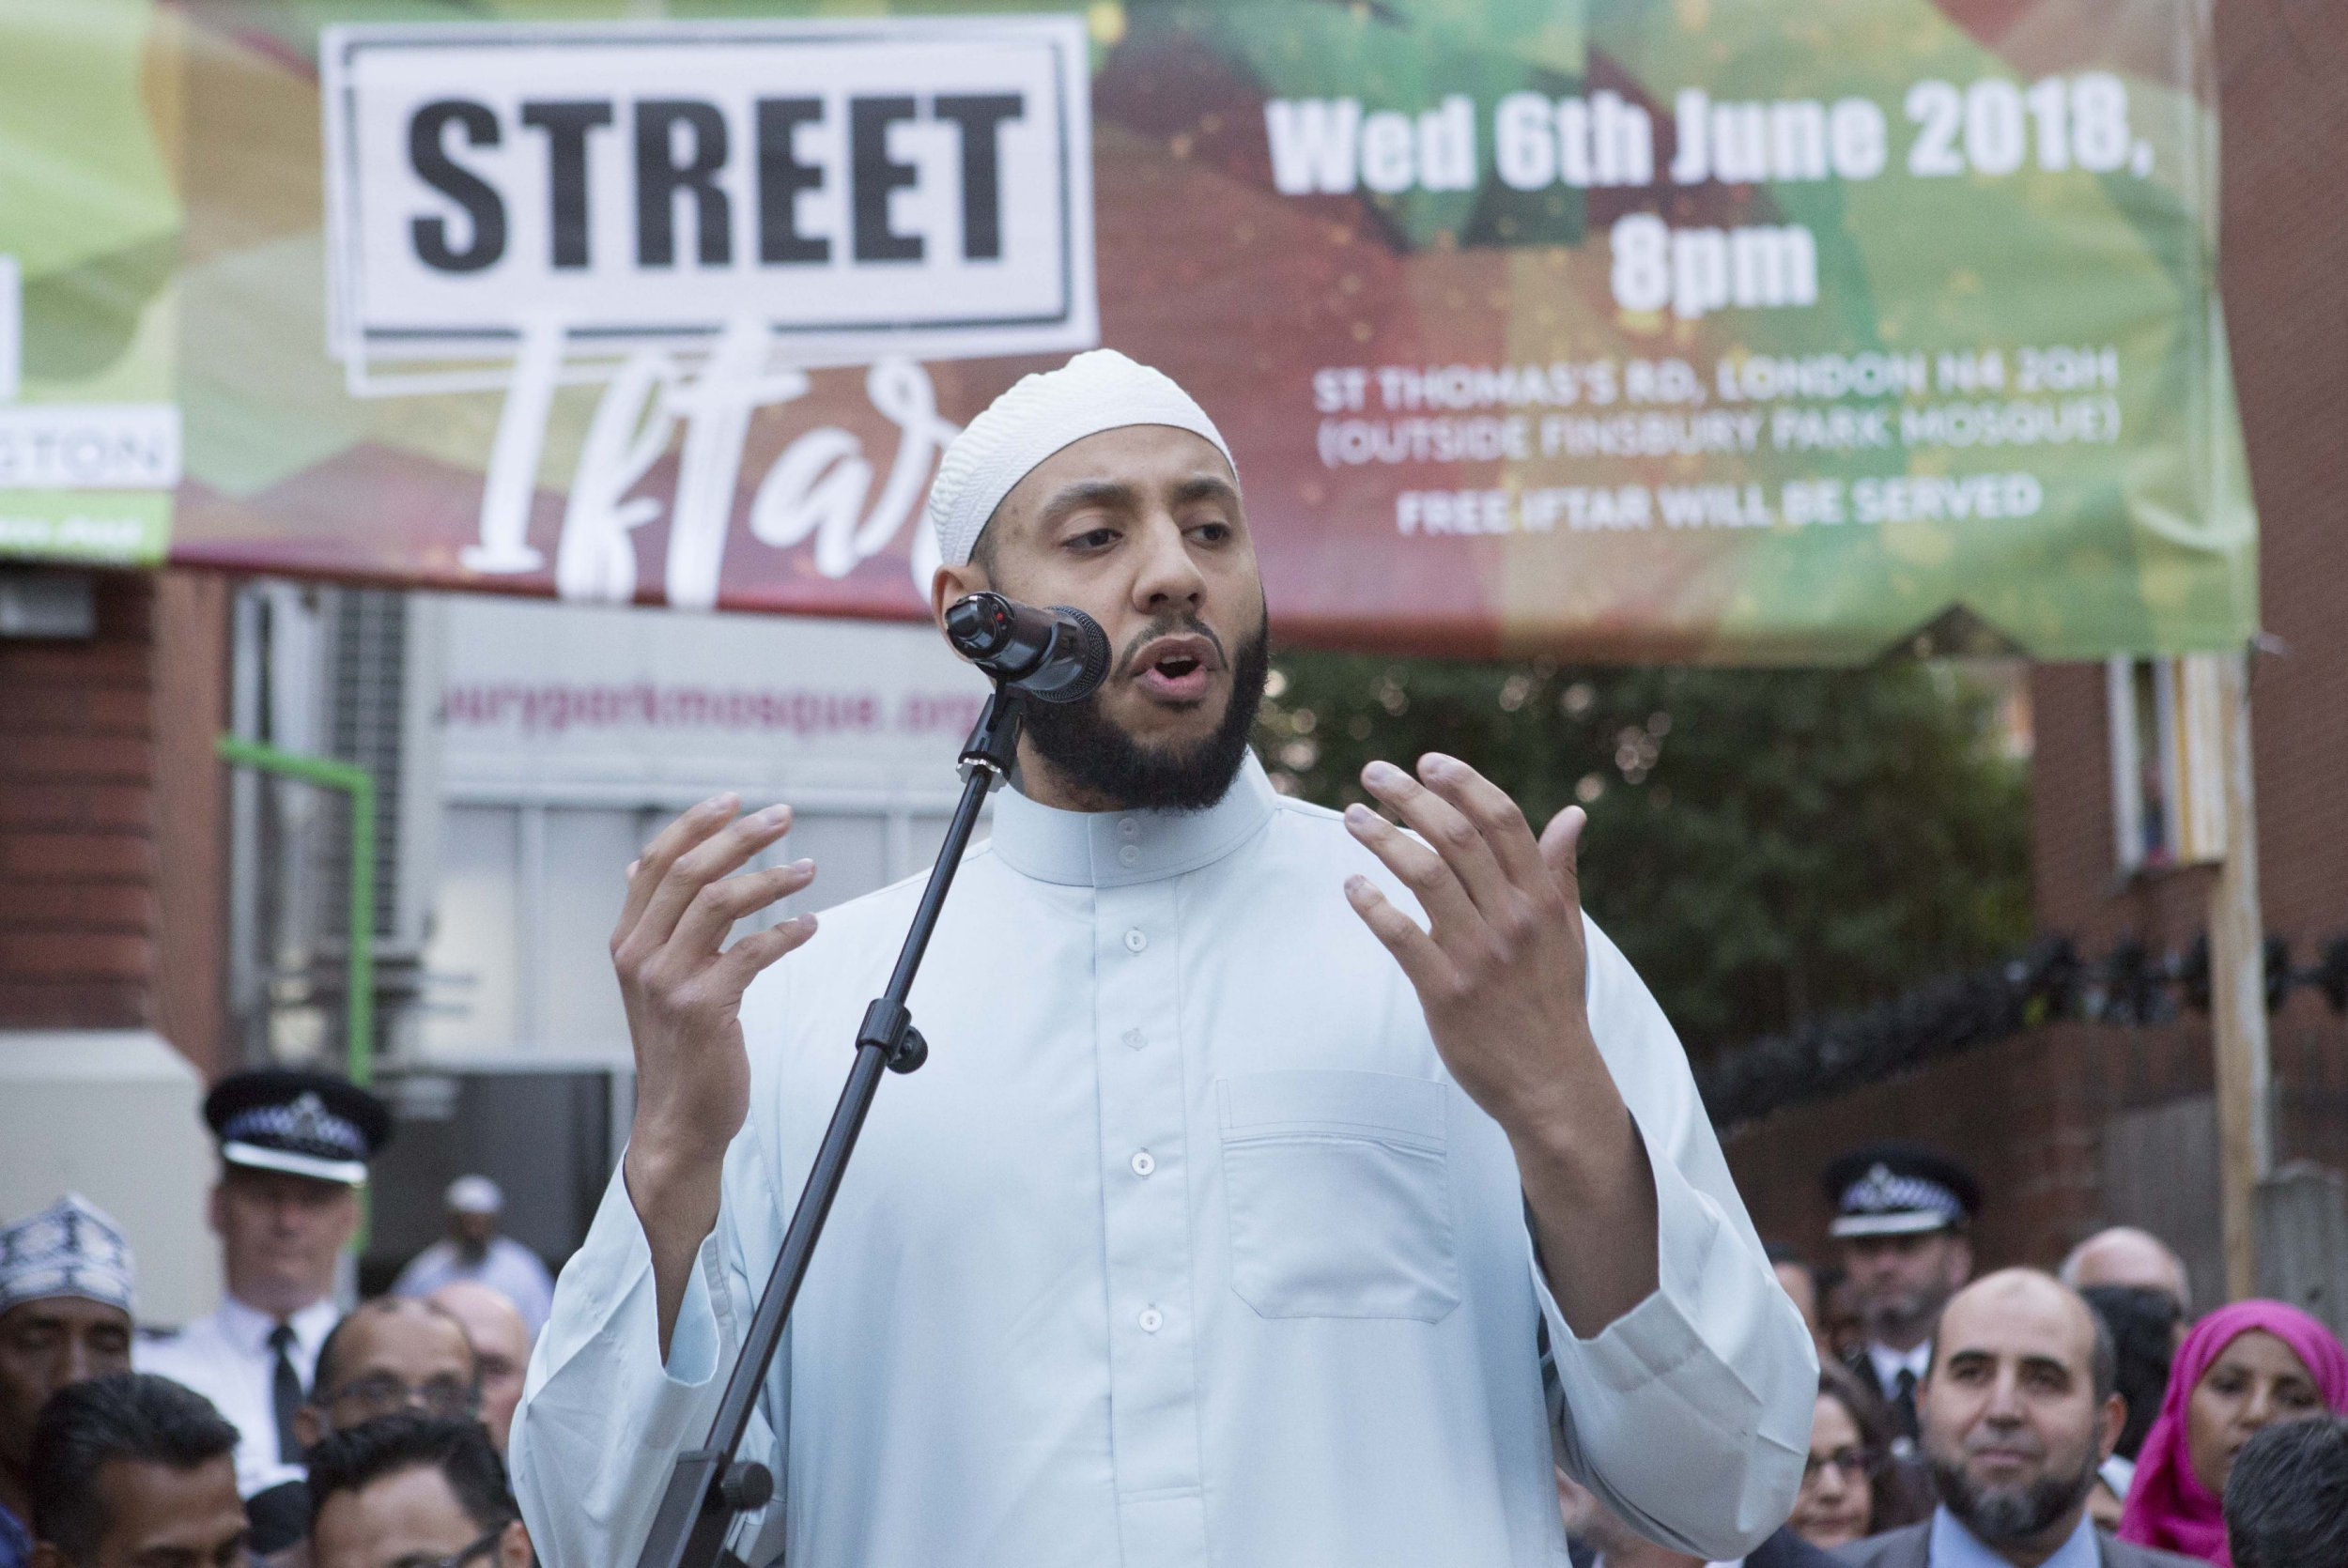 Imam Mohammed Mahmoud joins supporters as he makes a speech to celebrate community spirit one year after the Finsbury Park terrorist attack.